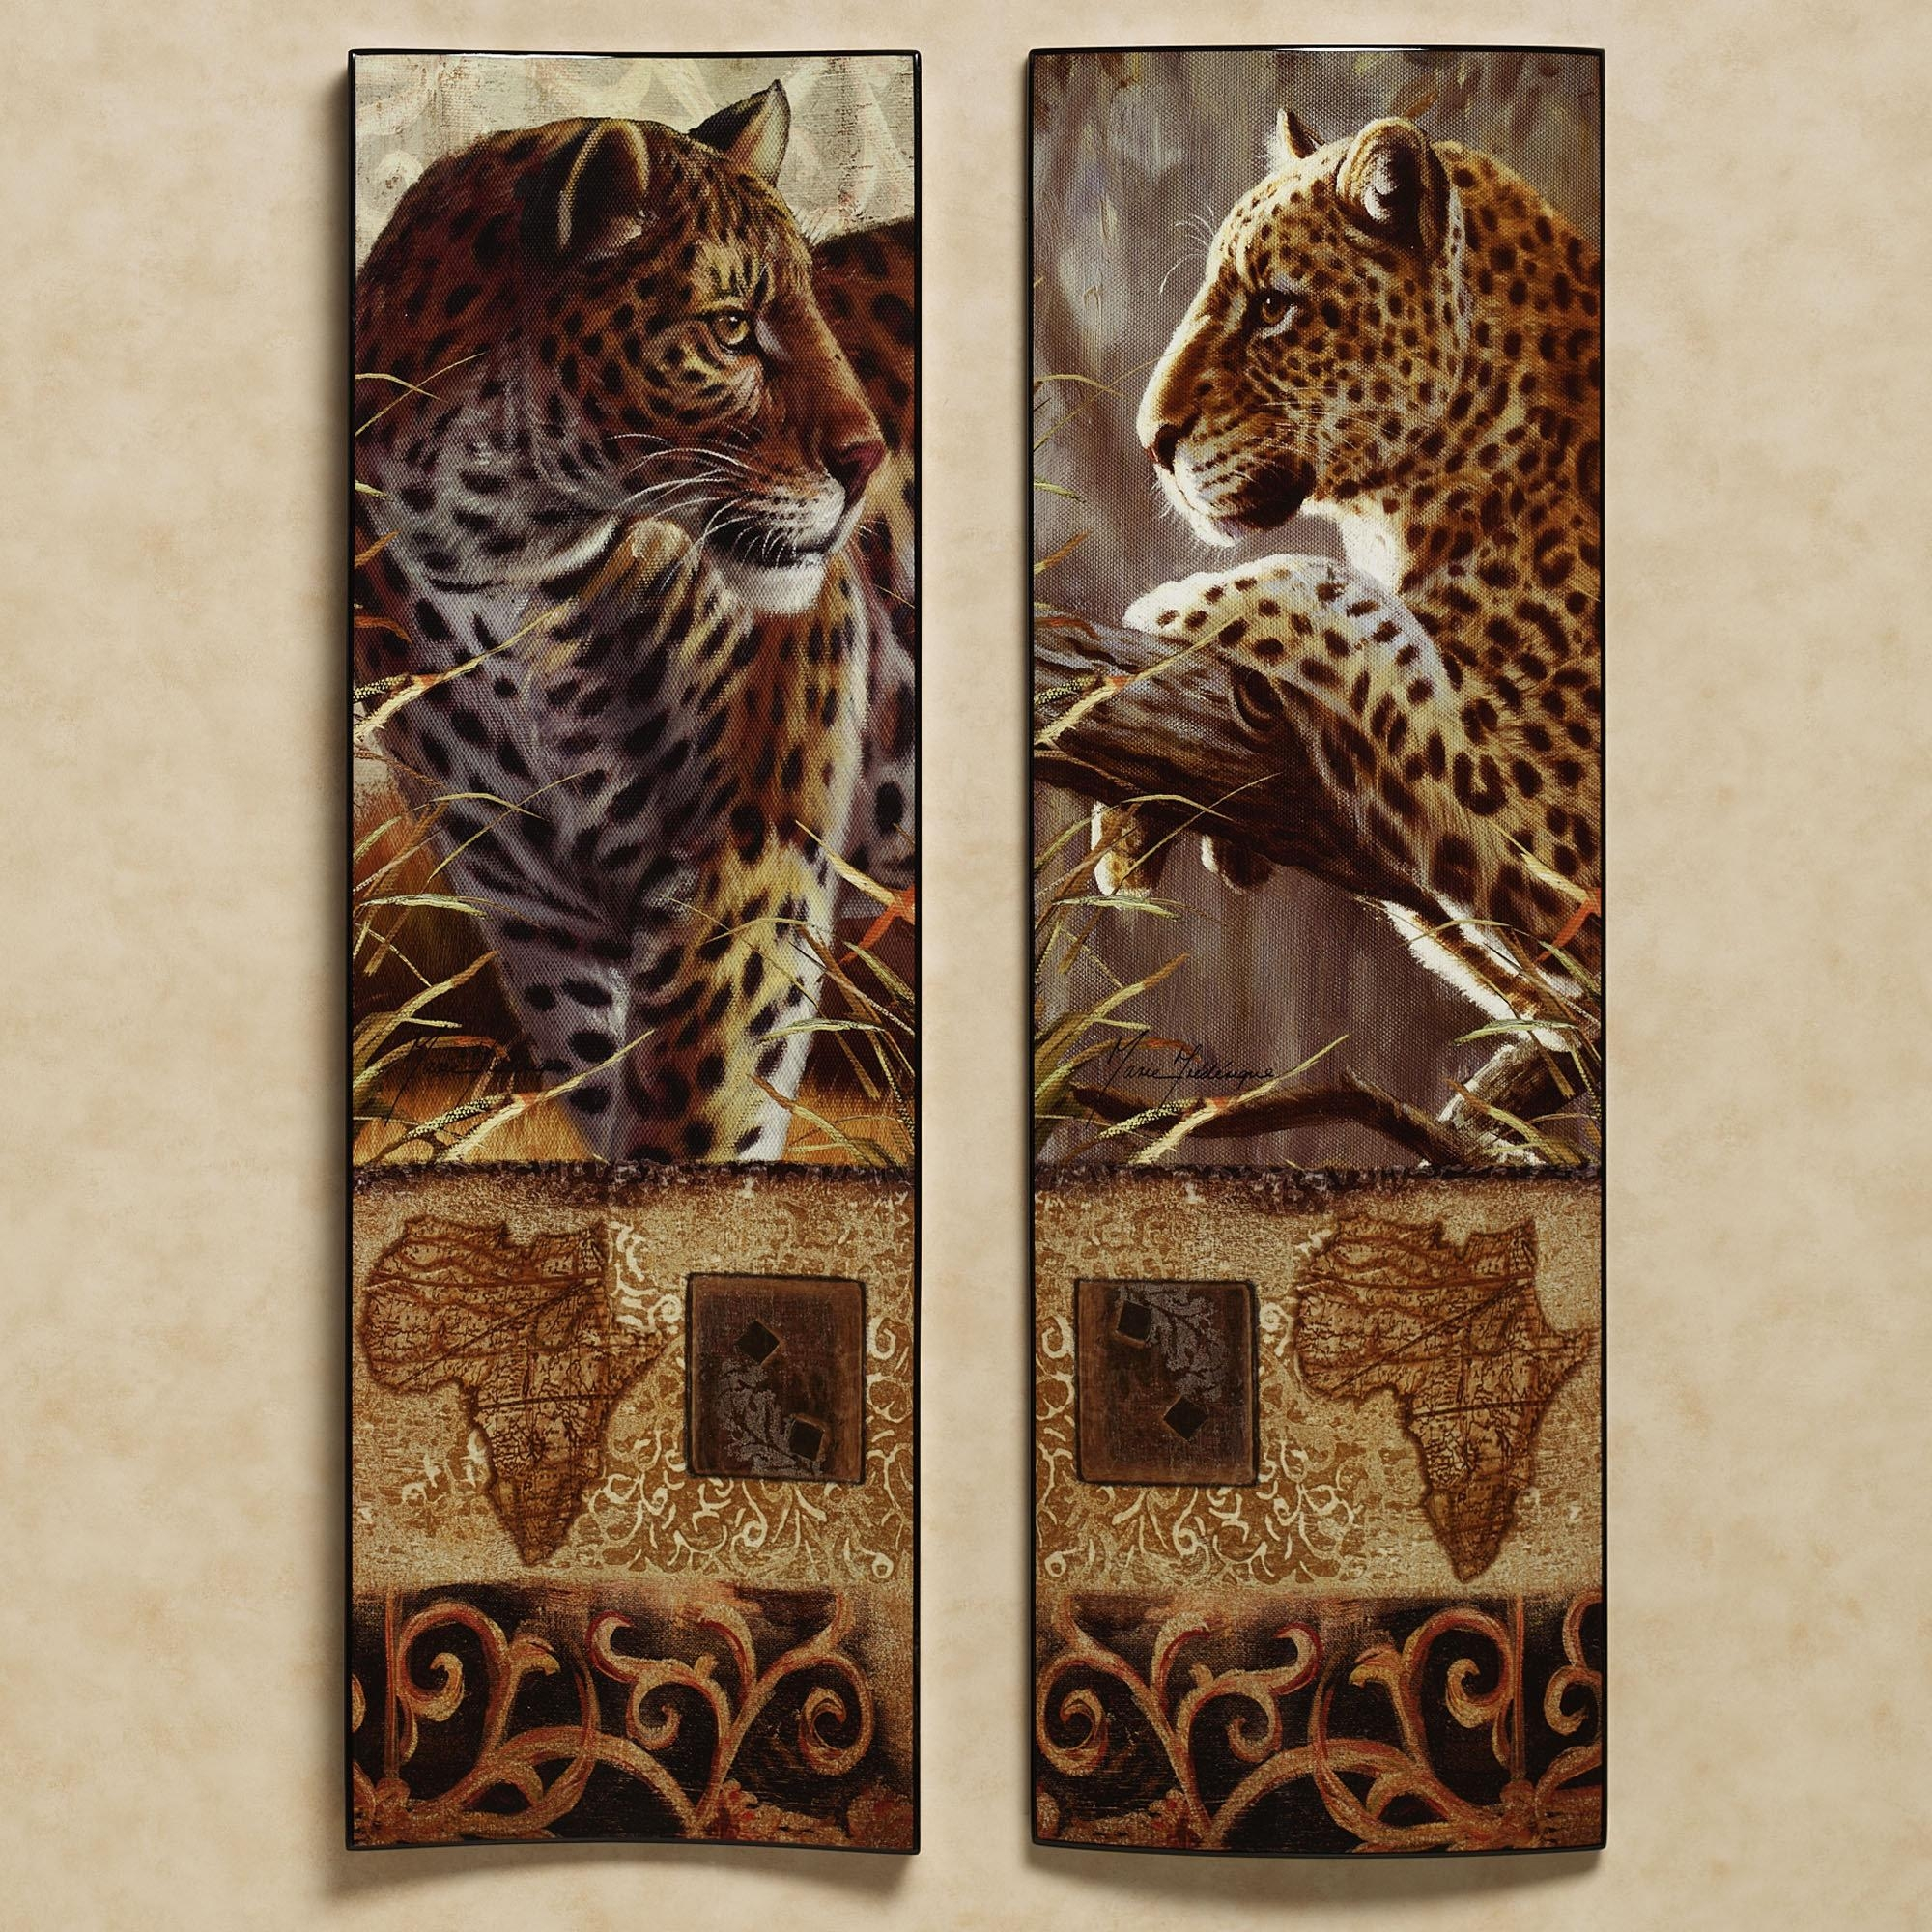 Wall Art Ideas Design : Impressions Of Animal Print Wall Art Intended For Leopard Print Wall Art (View 13 of 20)